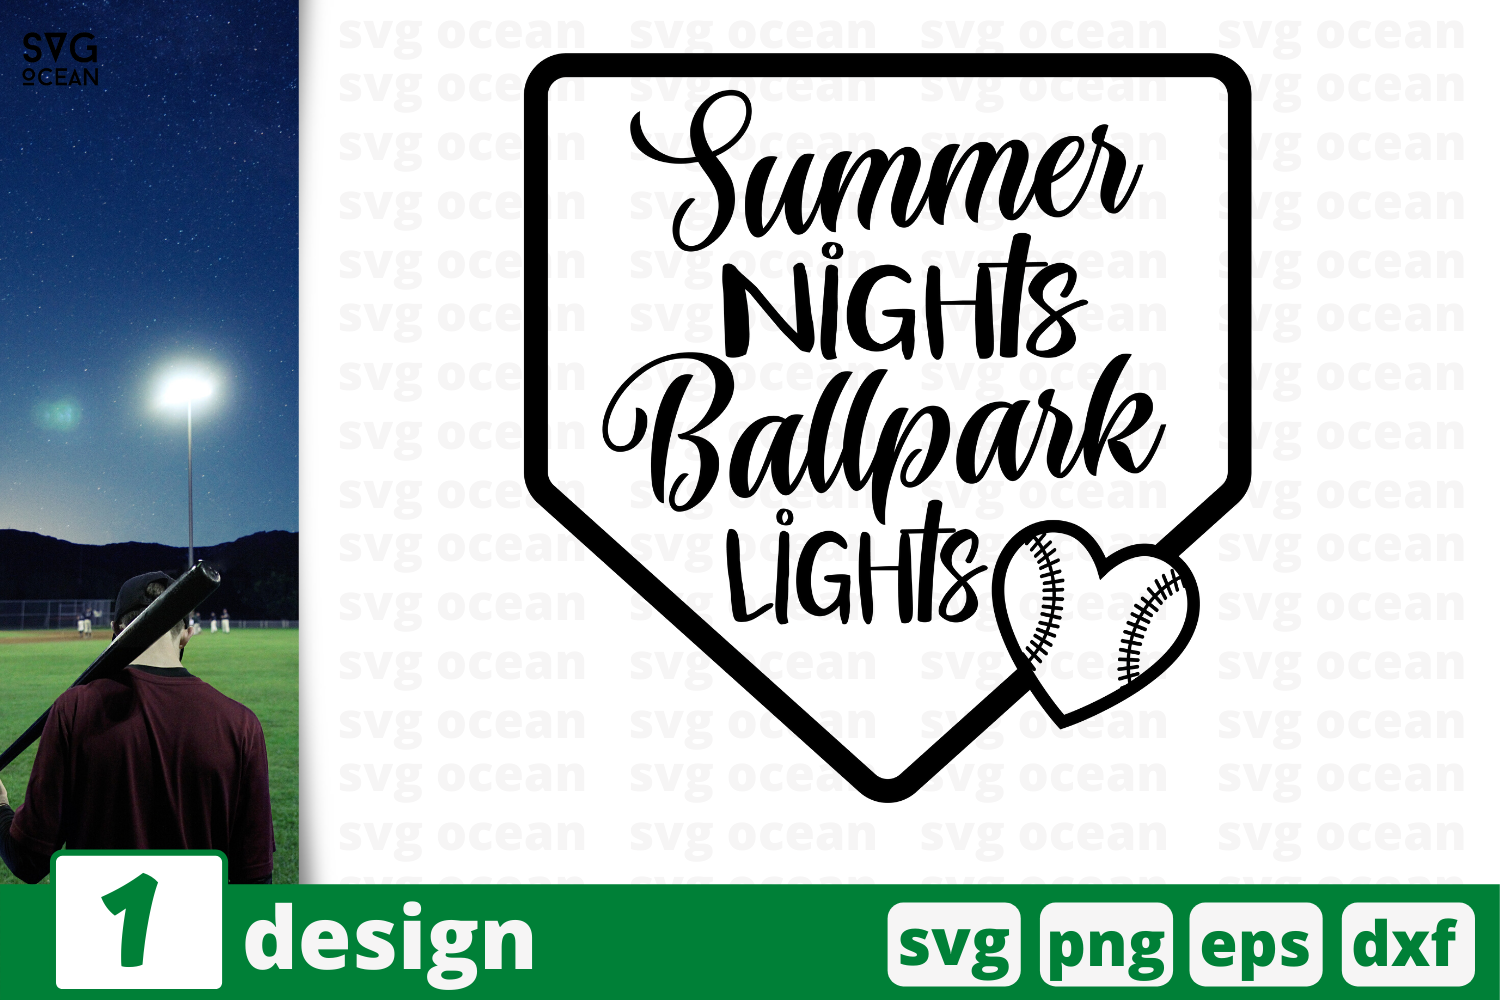 Download Free Summer Nights Ballpark Lights Graphic By Svgocean Creative Fabrica for Cricut Explore, Silhouette and other cutting machines.